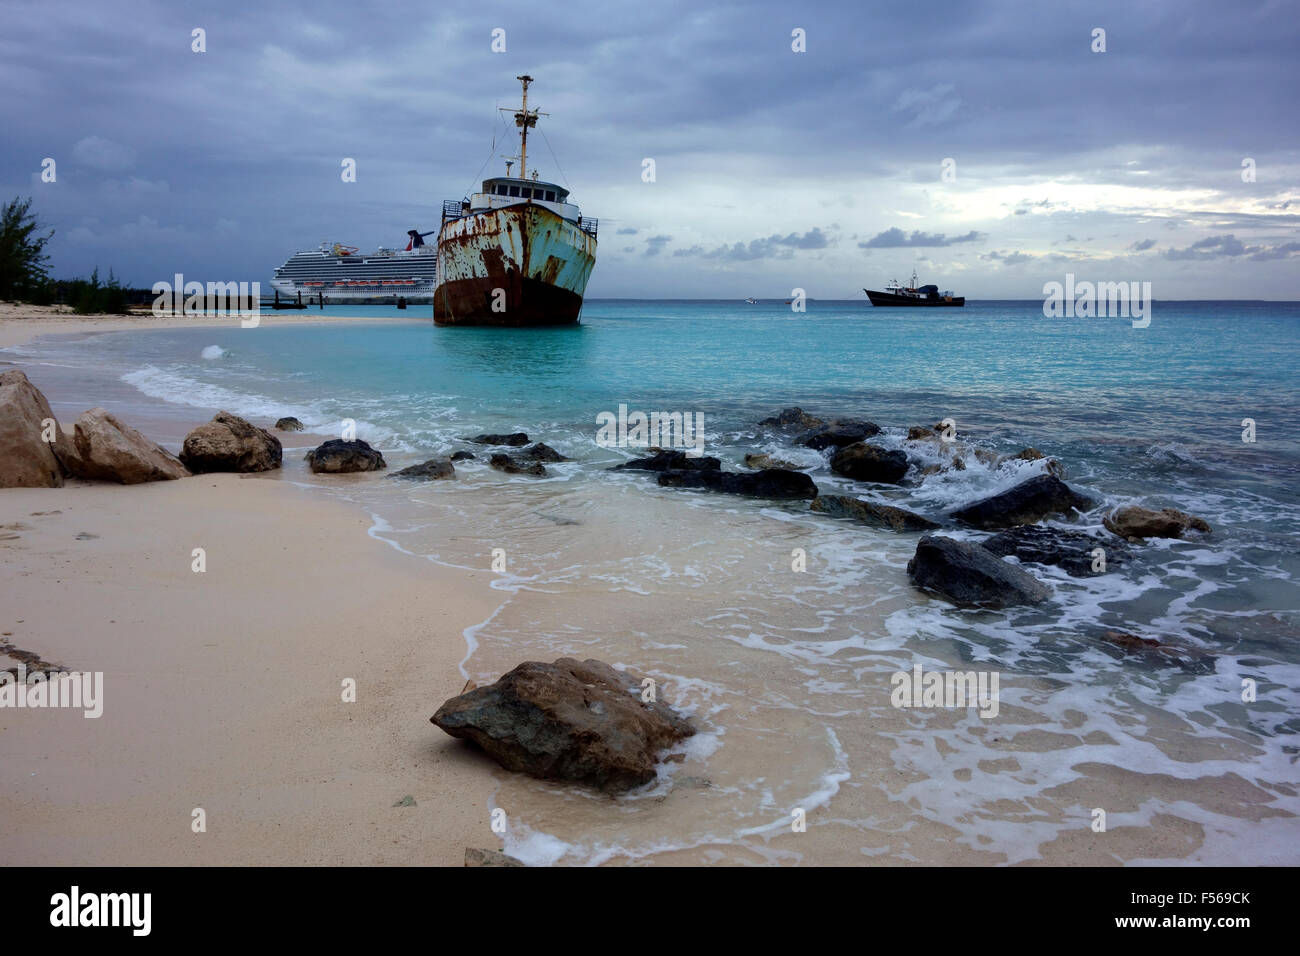 Grand Turk beach and a shipwreck in the dusk, Grand Turk, Turks  and Caicos, Caribbean - Stock Image